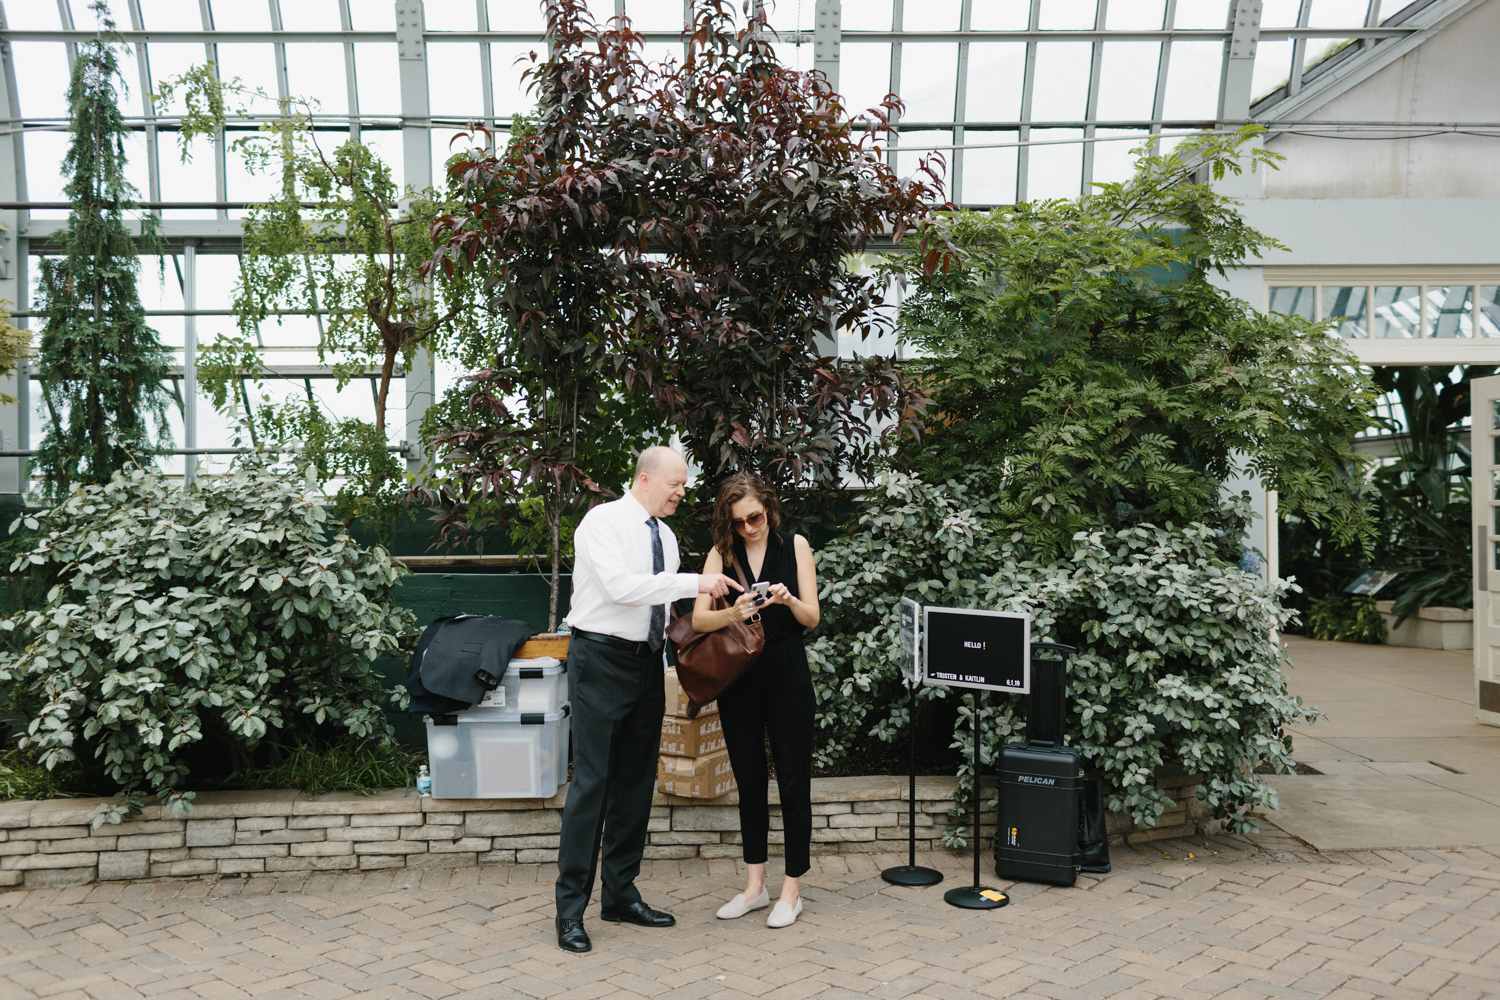 Chicago Garfield Park Conservatory Wedding by Northern Michigan Photographer Mae Stier-030.jpg